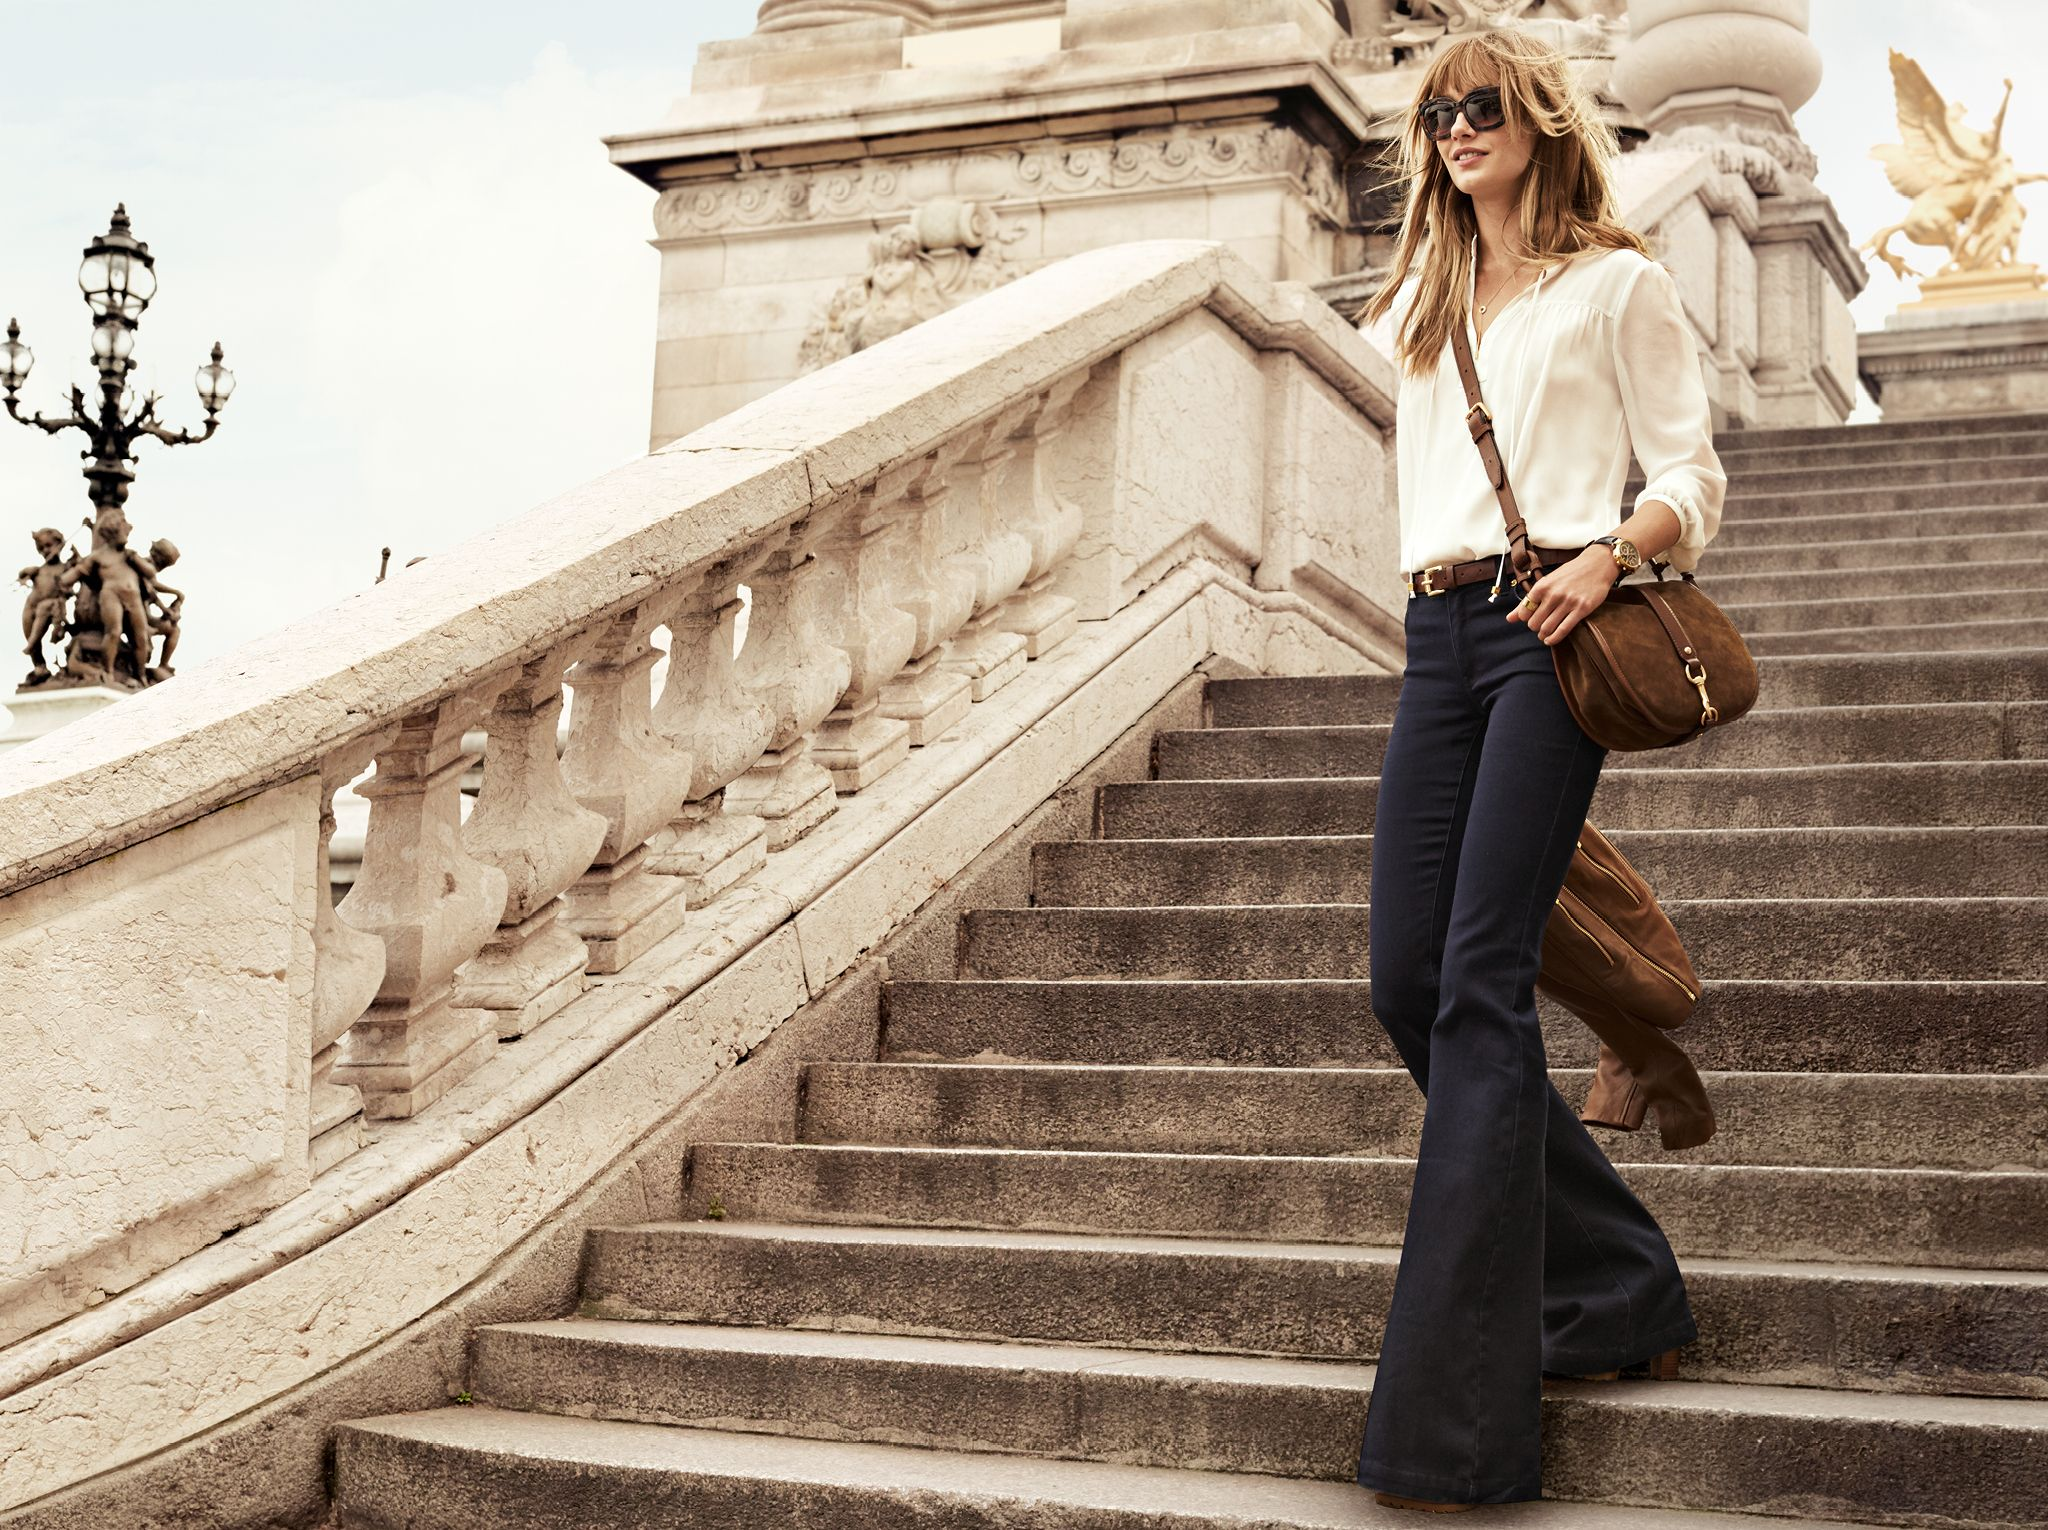 Define a chic bohemian attitude with flared denim and the for Define bohemian style